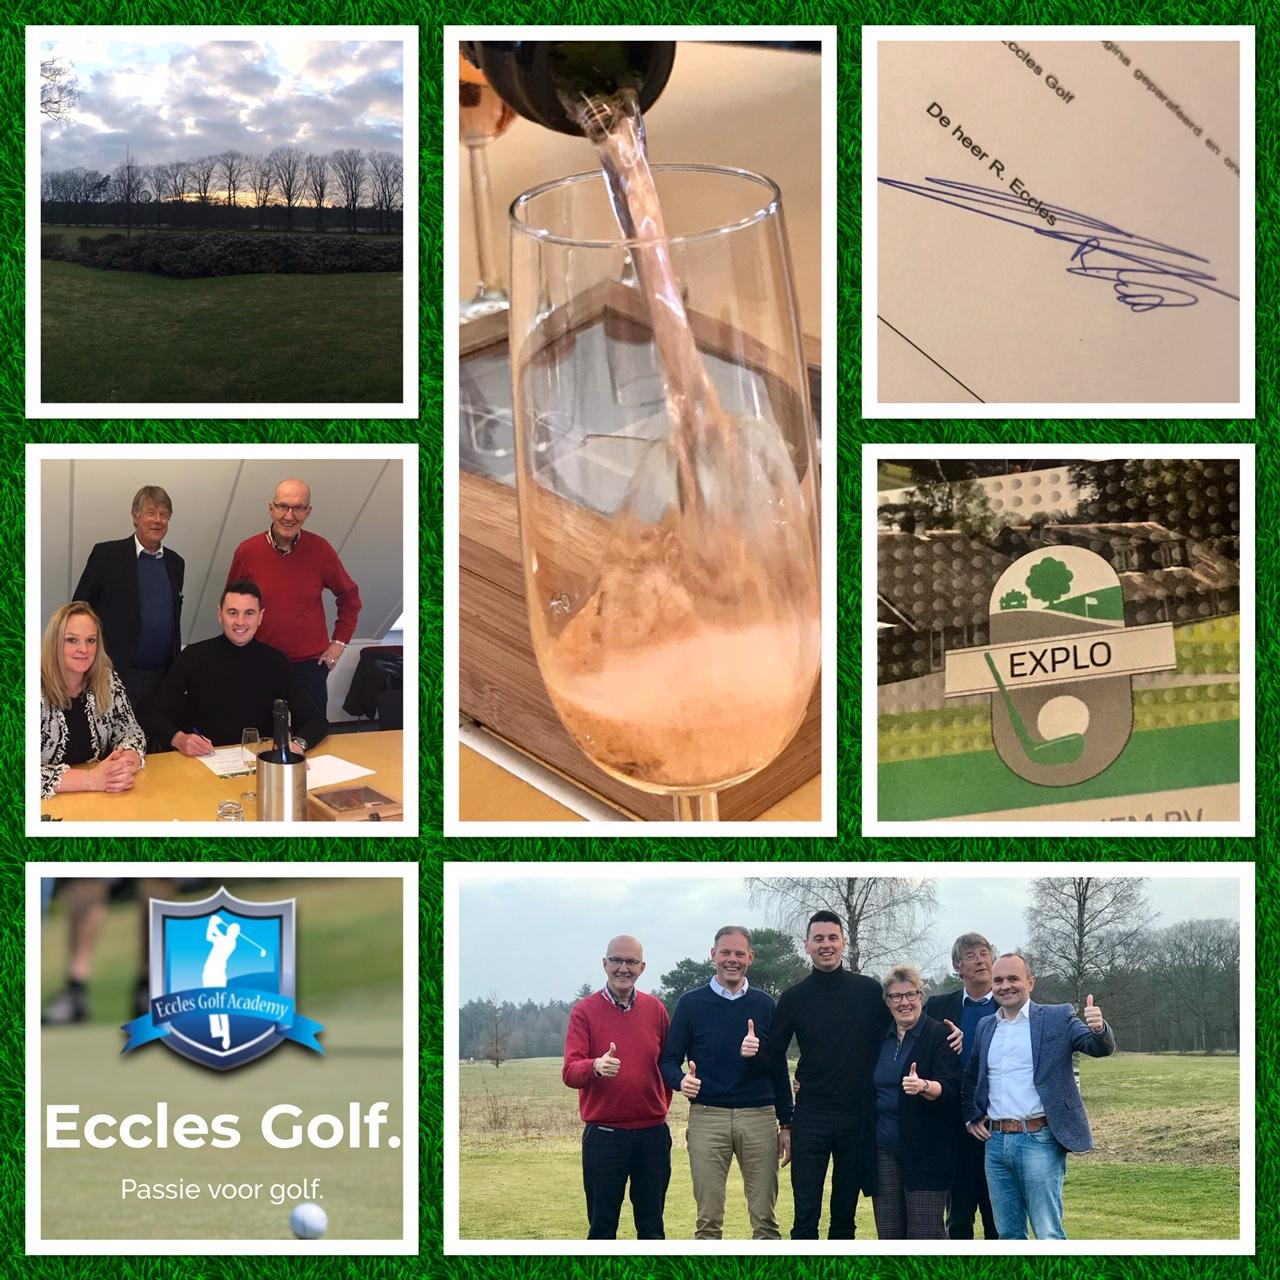 Eccles Golf Academy